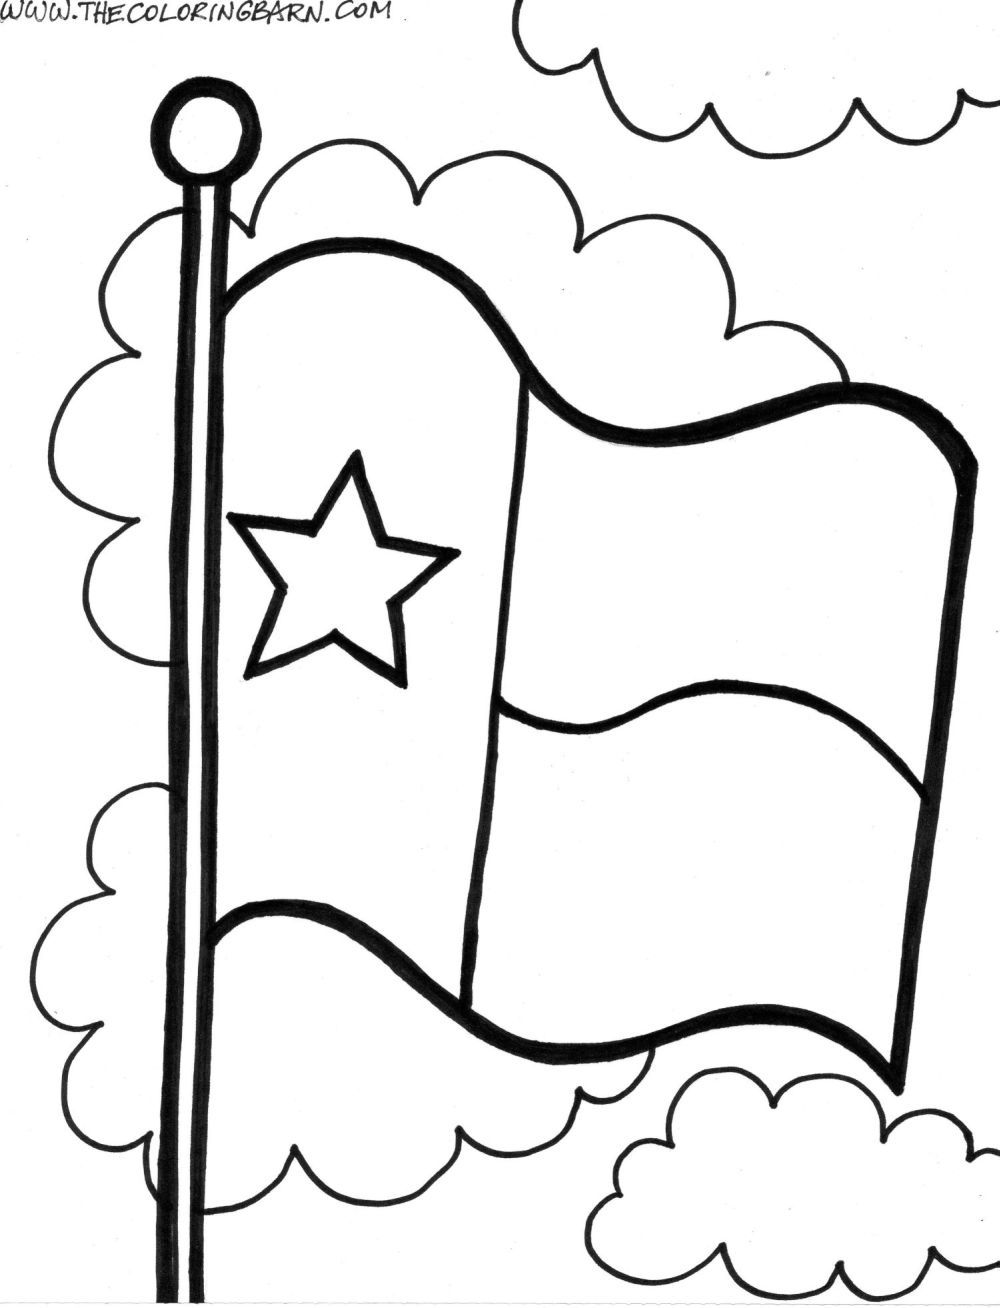 texas symbols coloring pages texas state symbols coloring pages coloring home texas pages coloring symbols